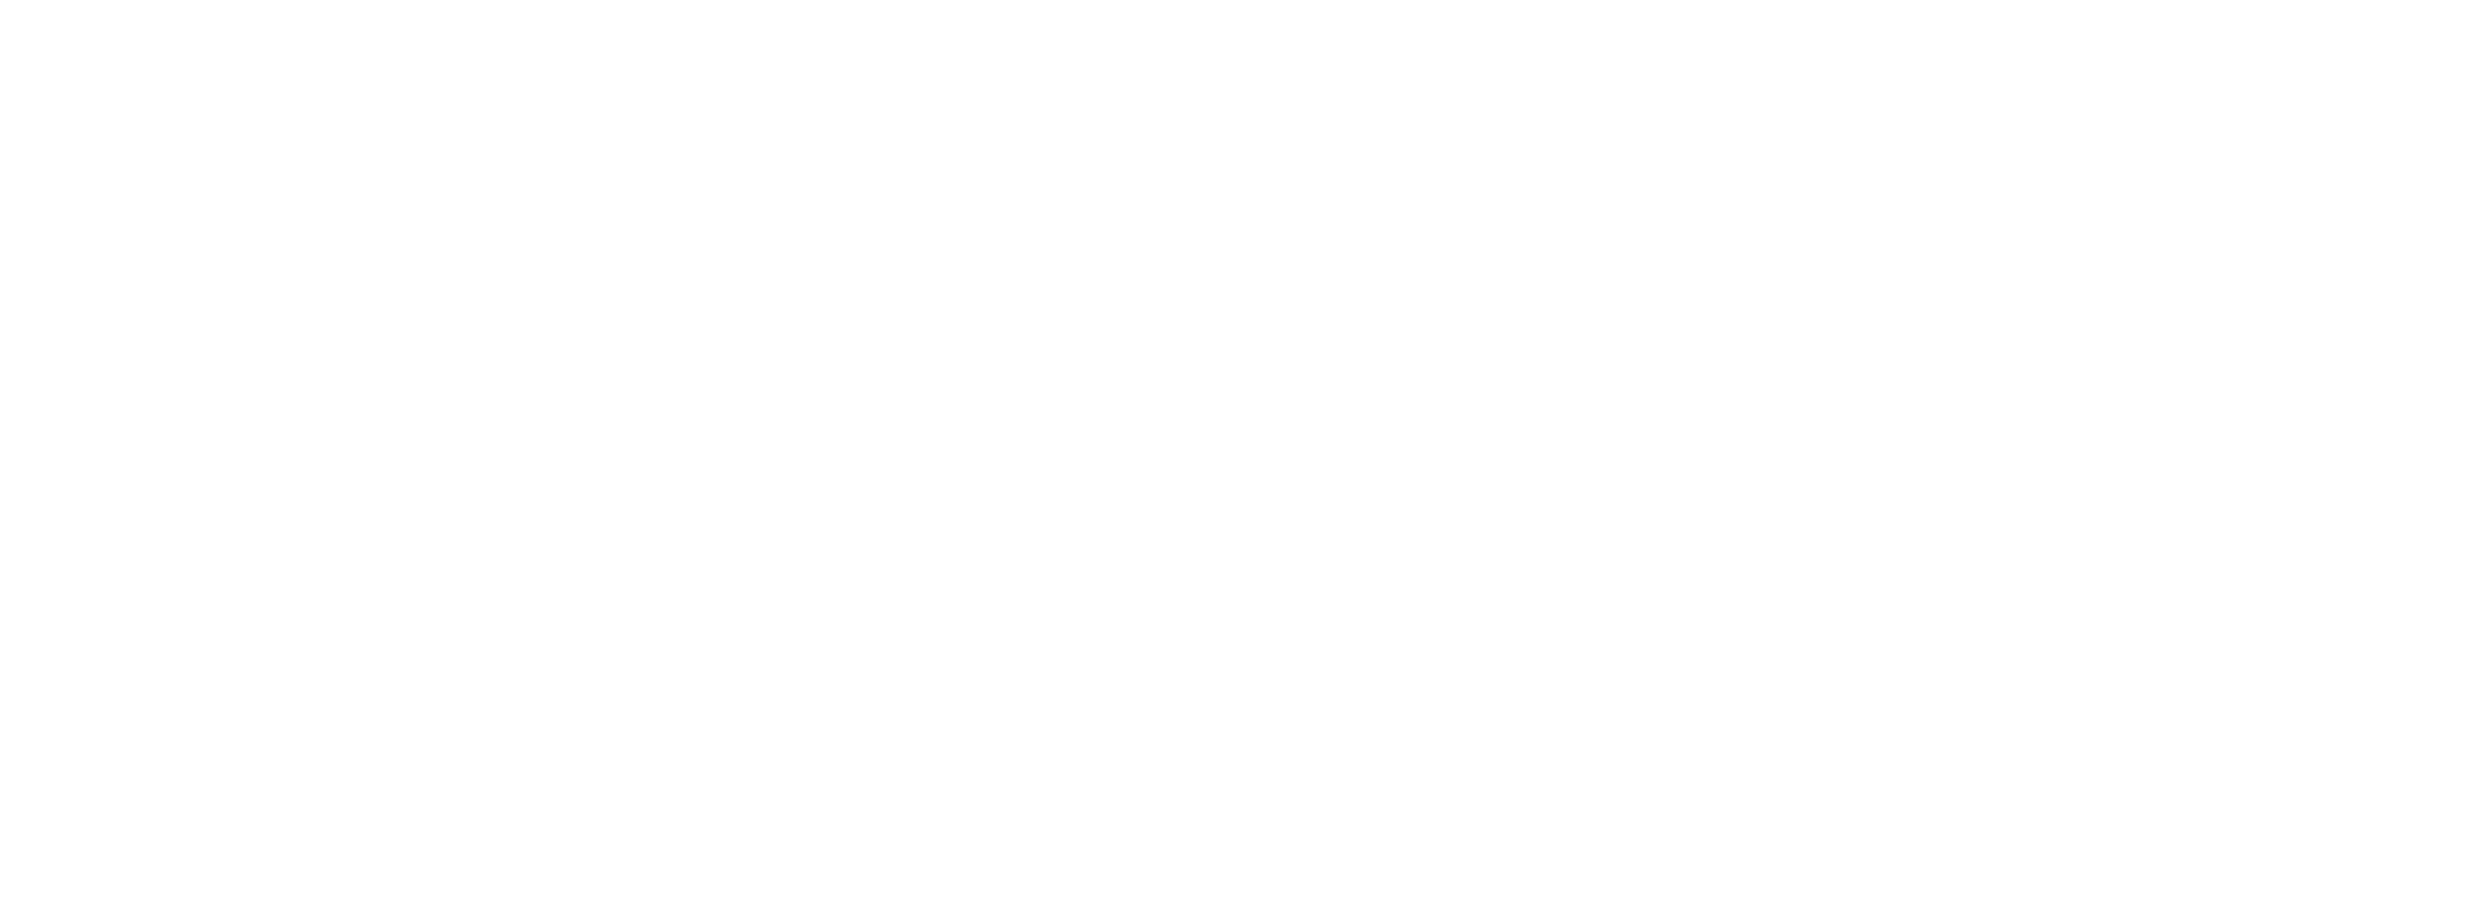 Logo The Factory HKA